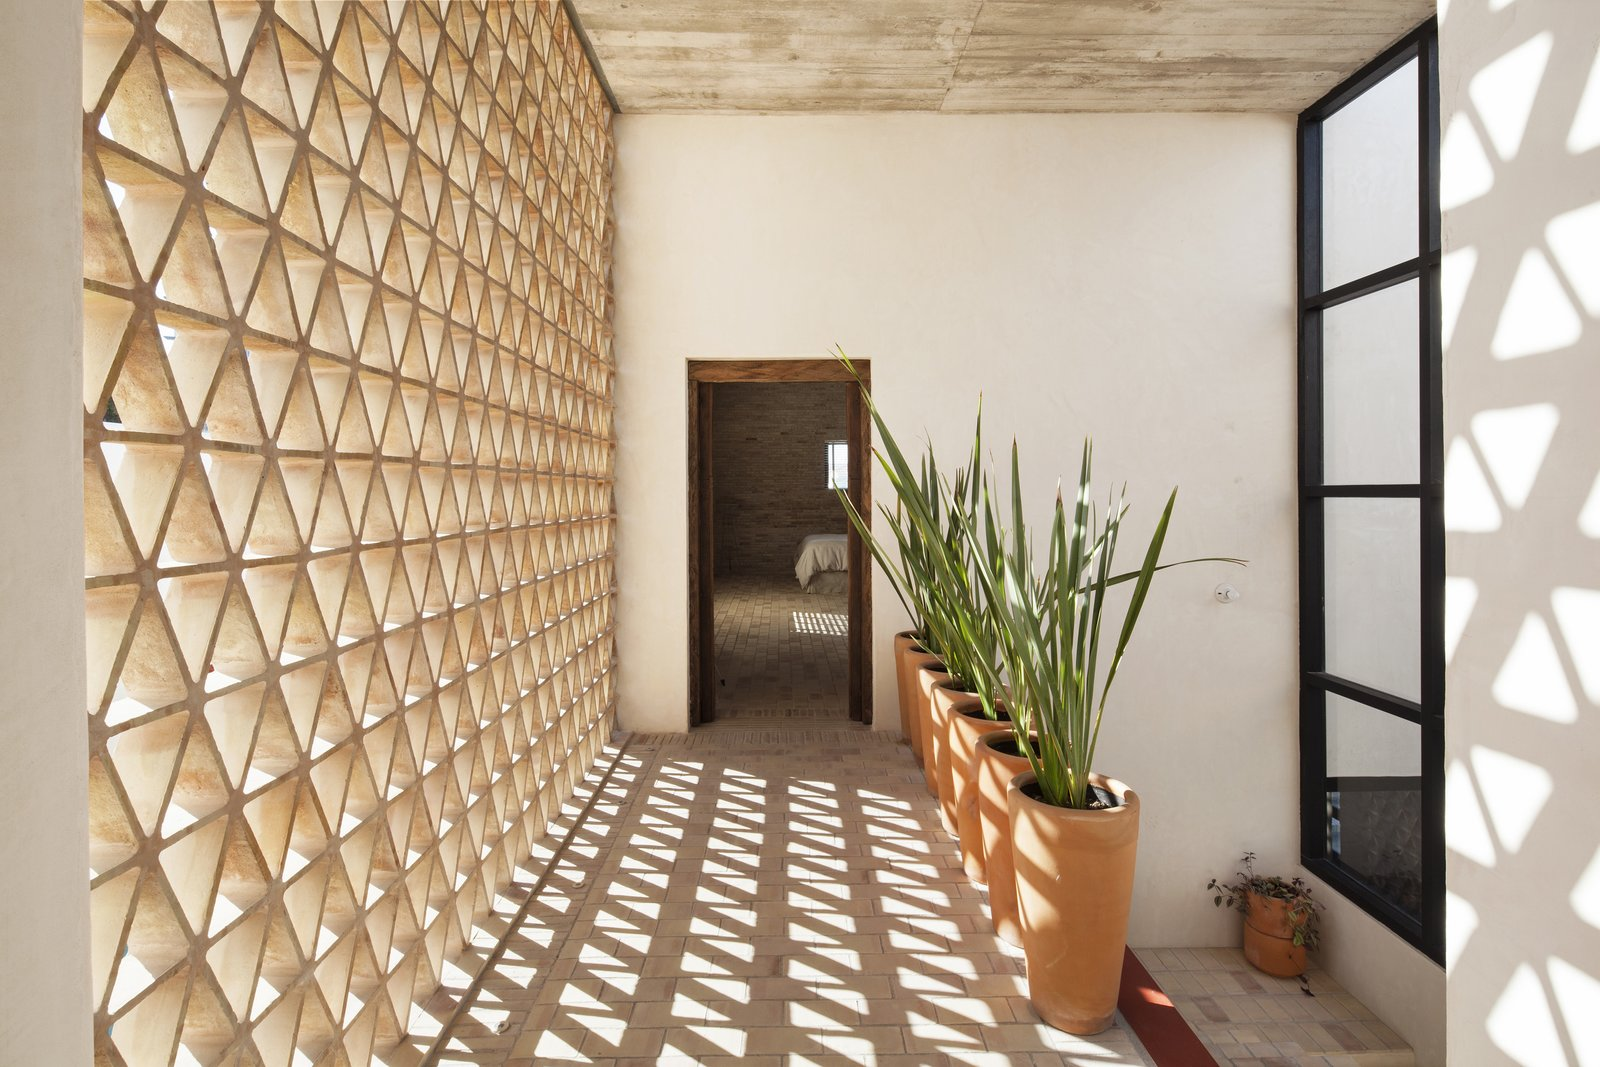 Hallway and Brick Floor Aisle.  Casa Iguana by OBRA BLANCA